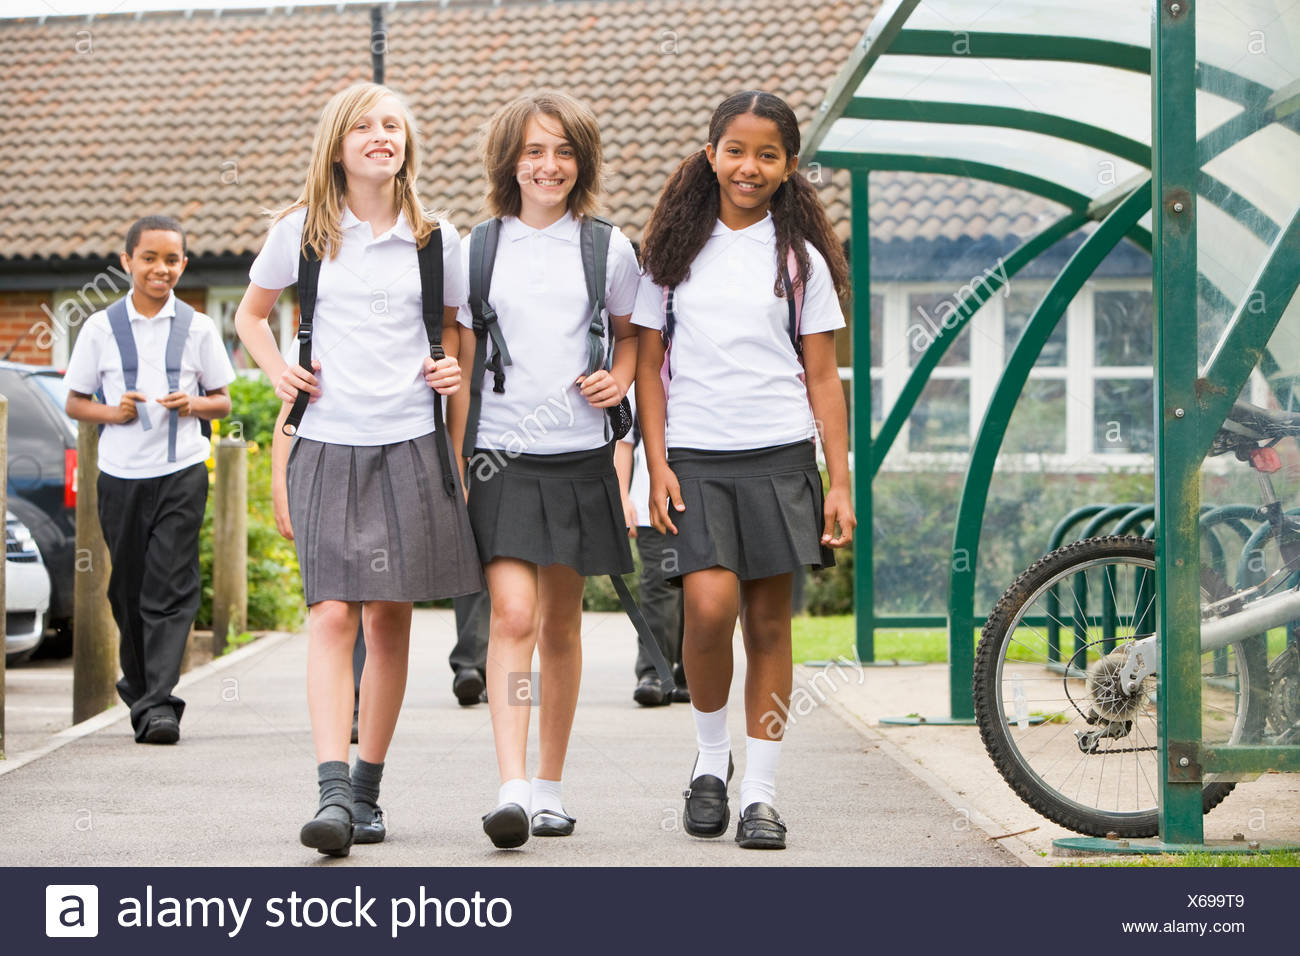 Three students leaving school with other students in background - Stock Image